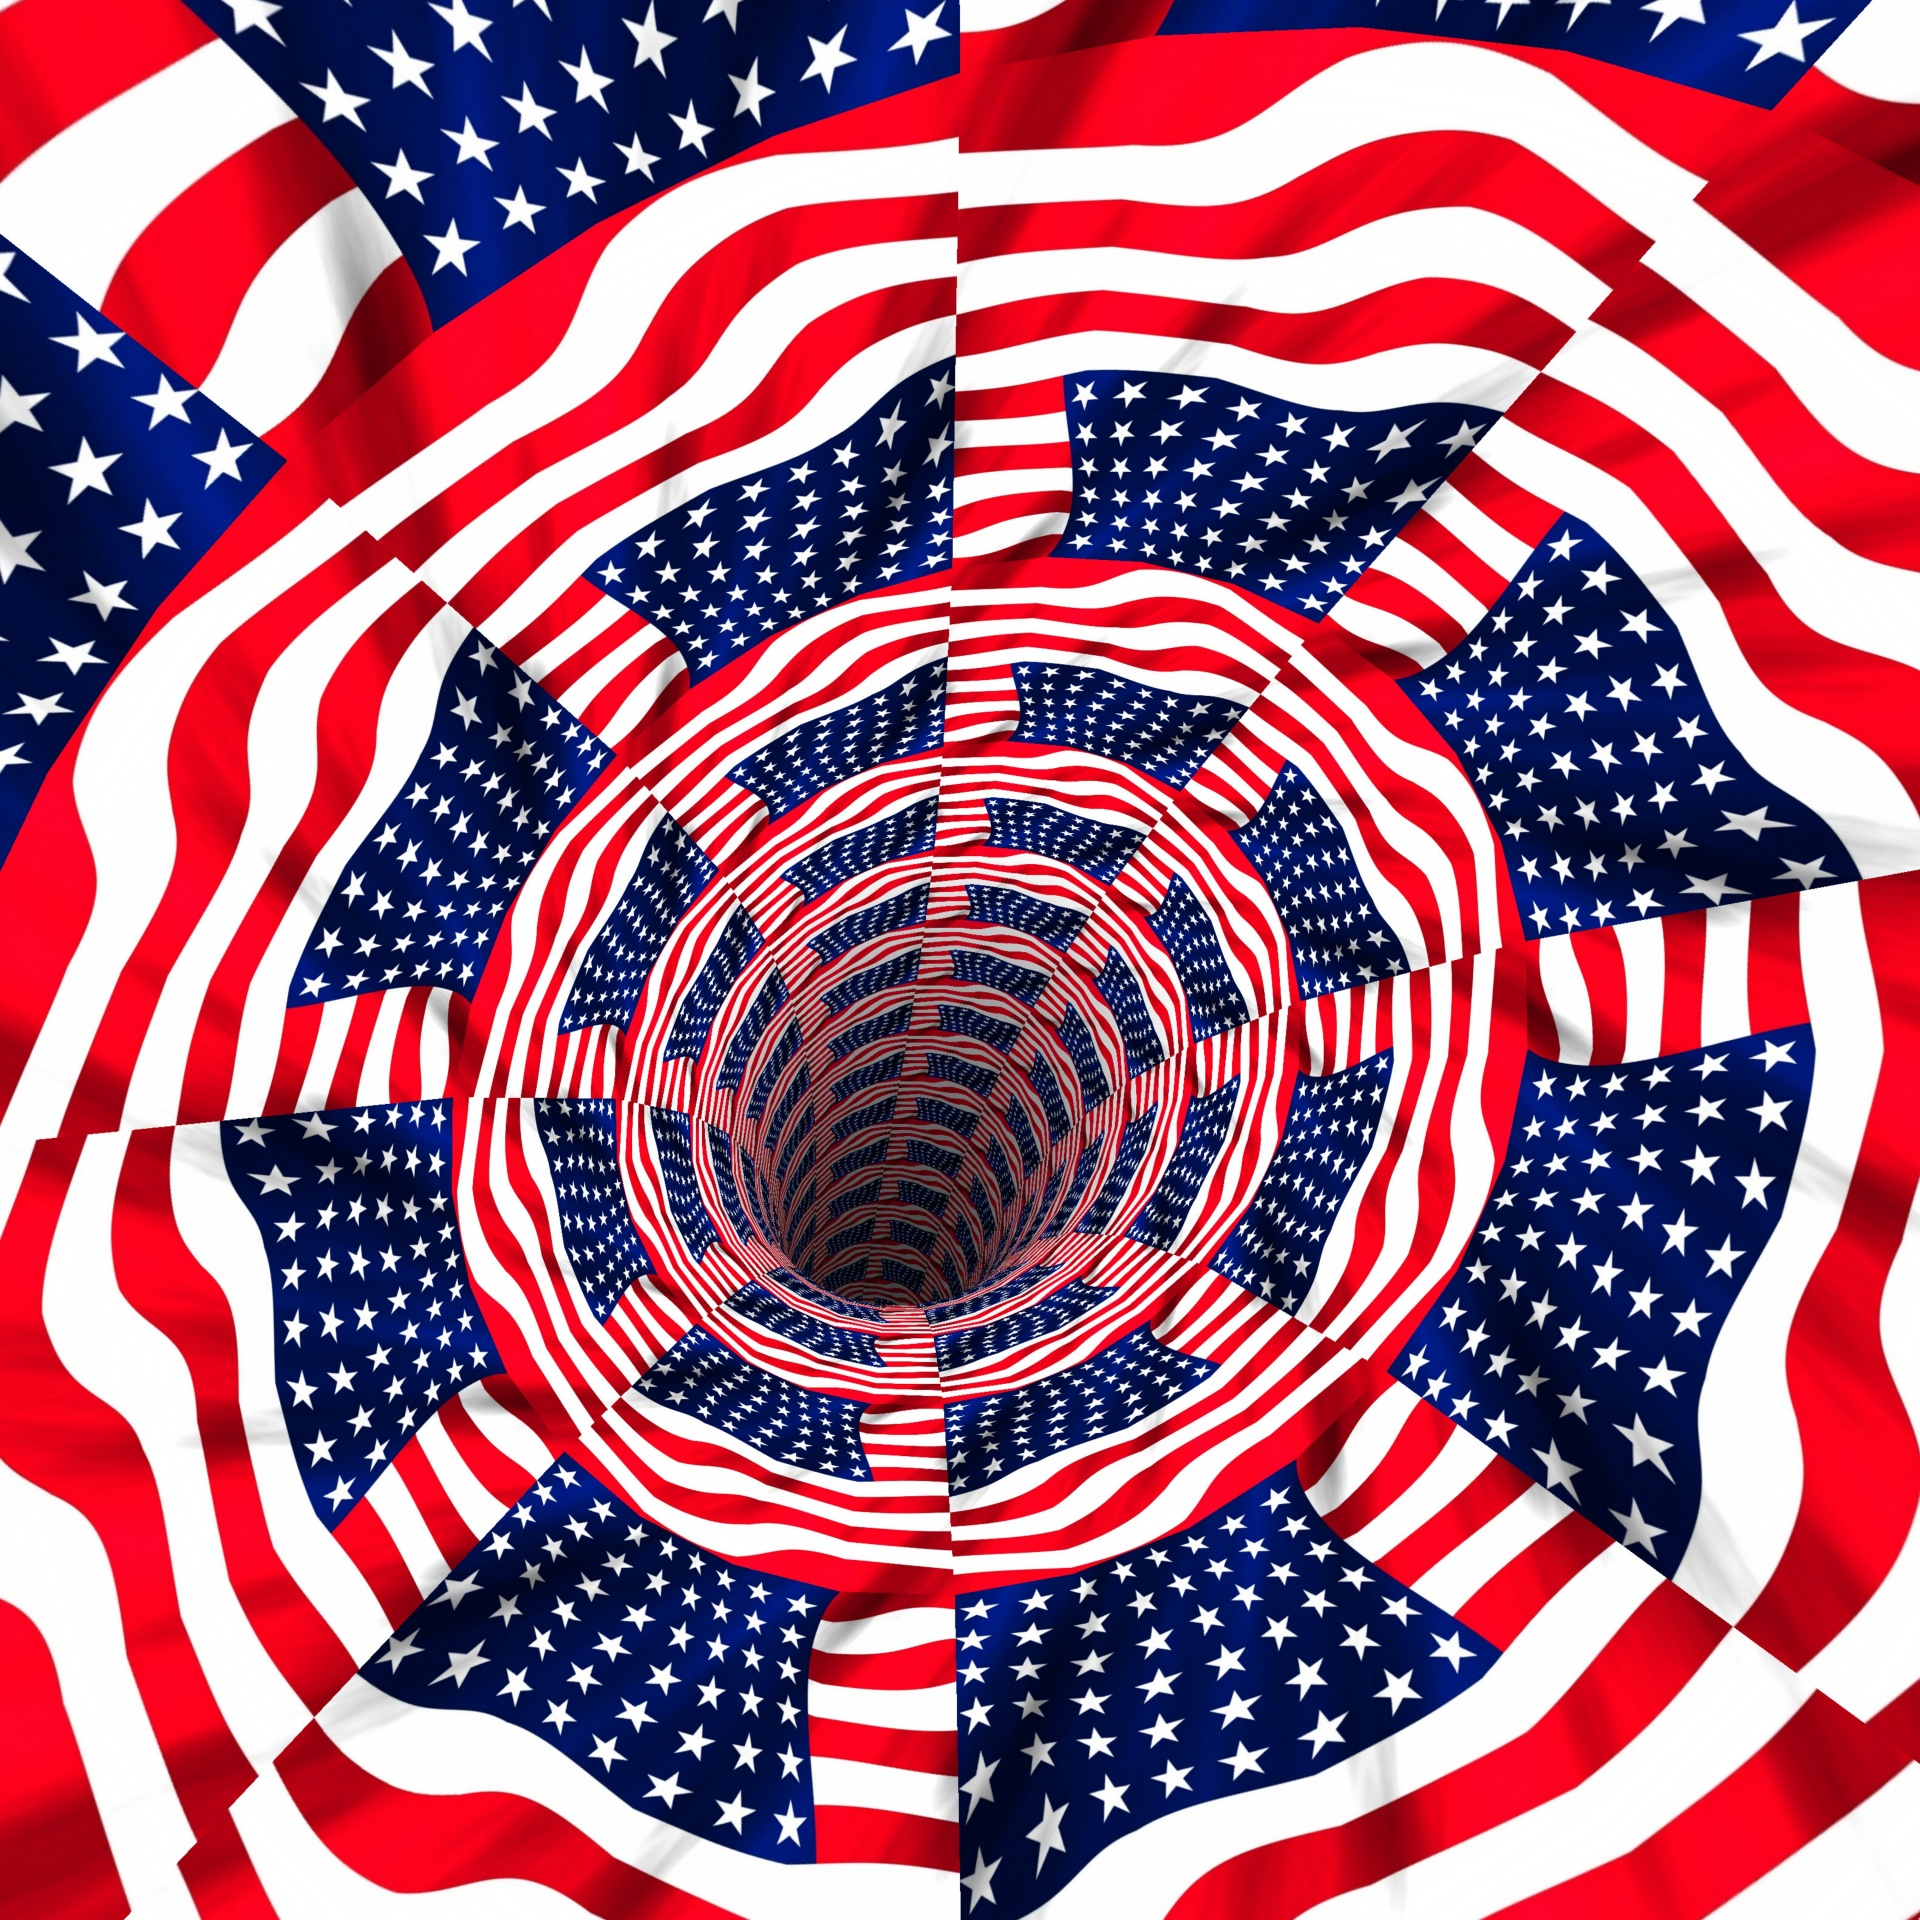 Wallpaper American Flag Red Stripes Free Image From Needpix Com